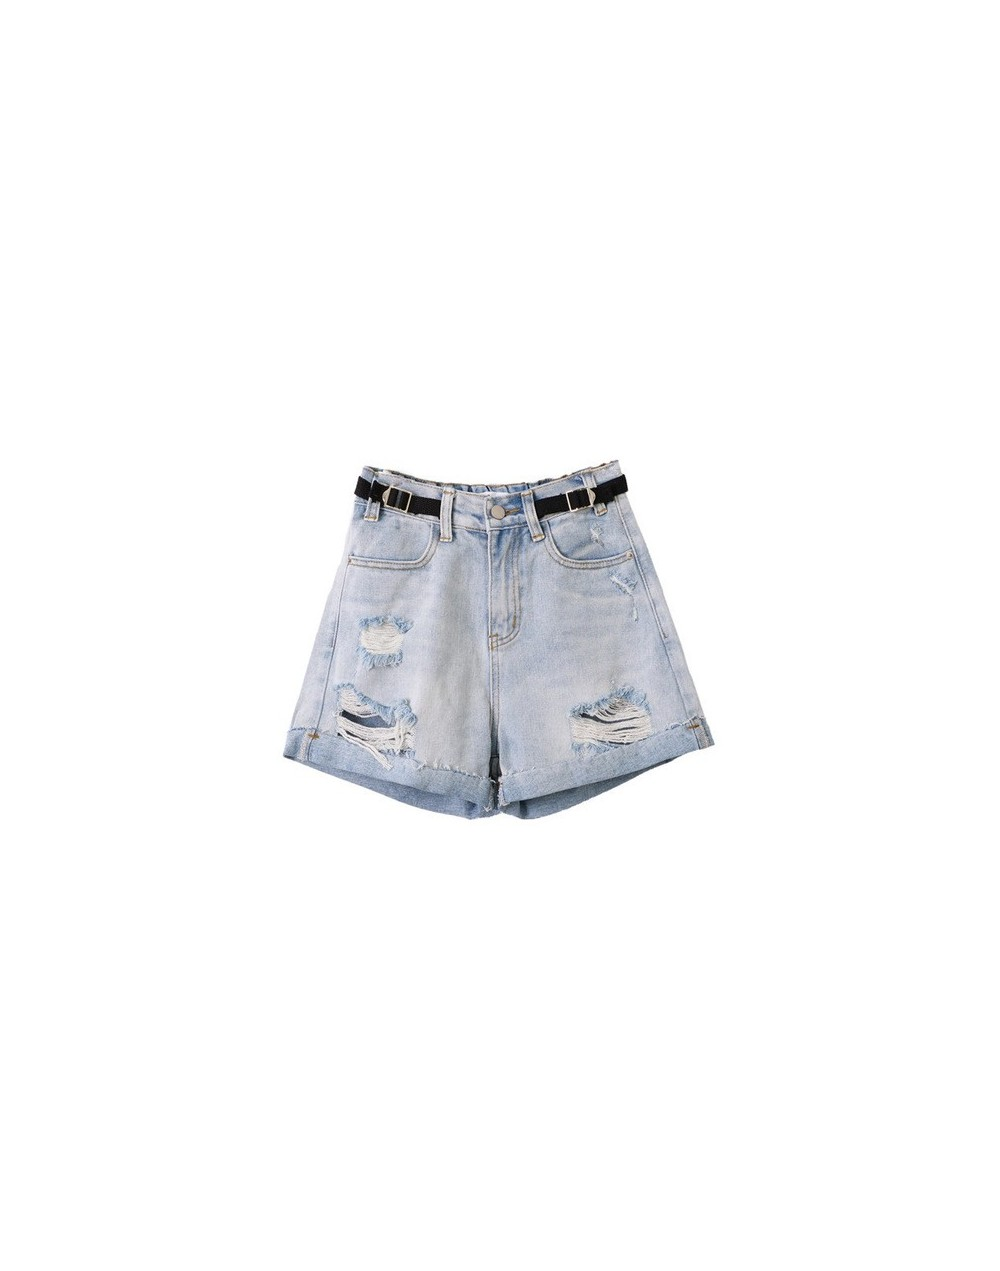 New Arrival Vintage Casual Summer Hot Sale Denim Women Shorts with PU Belt High Waists Leg-openings Plus Size Sexy Short Jea...